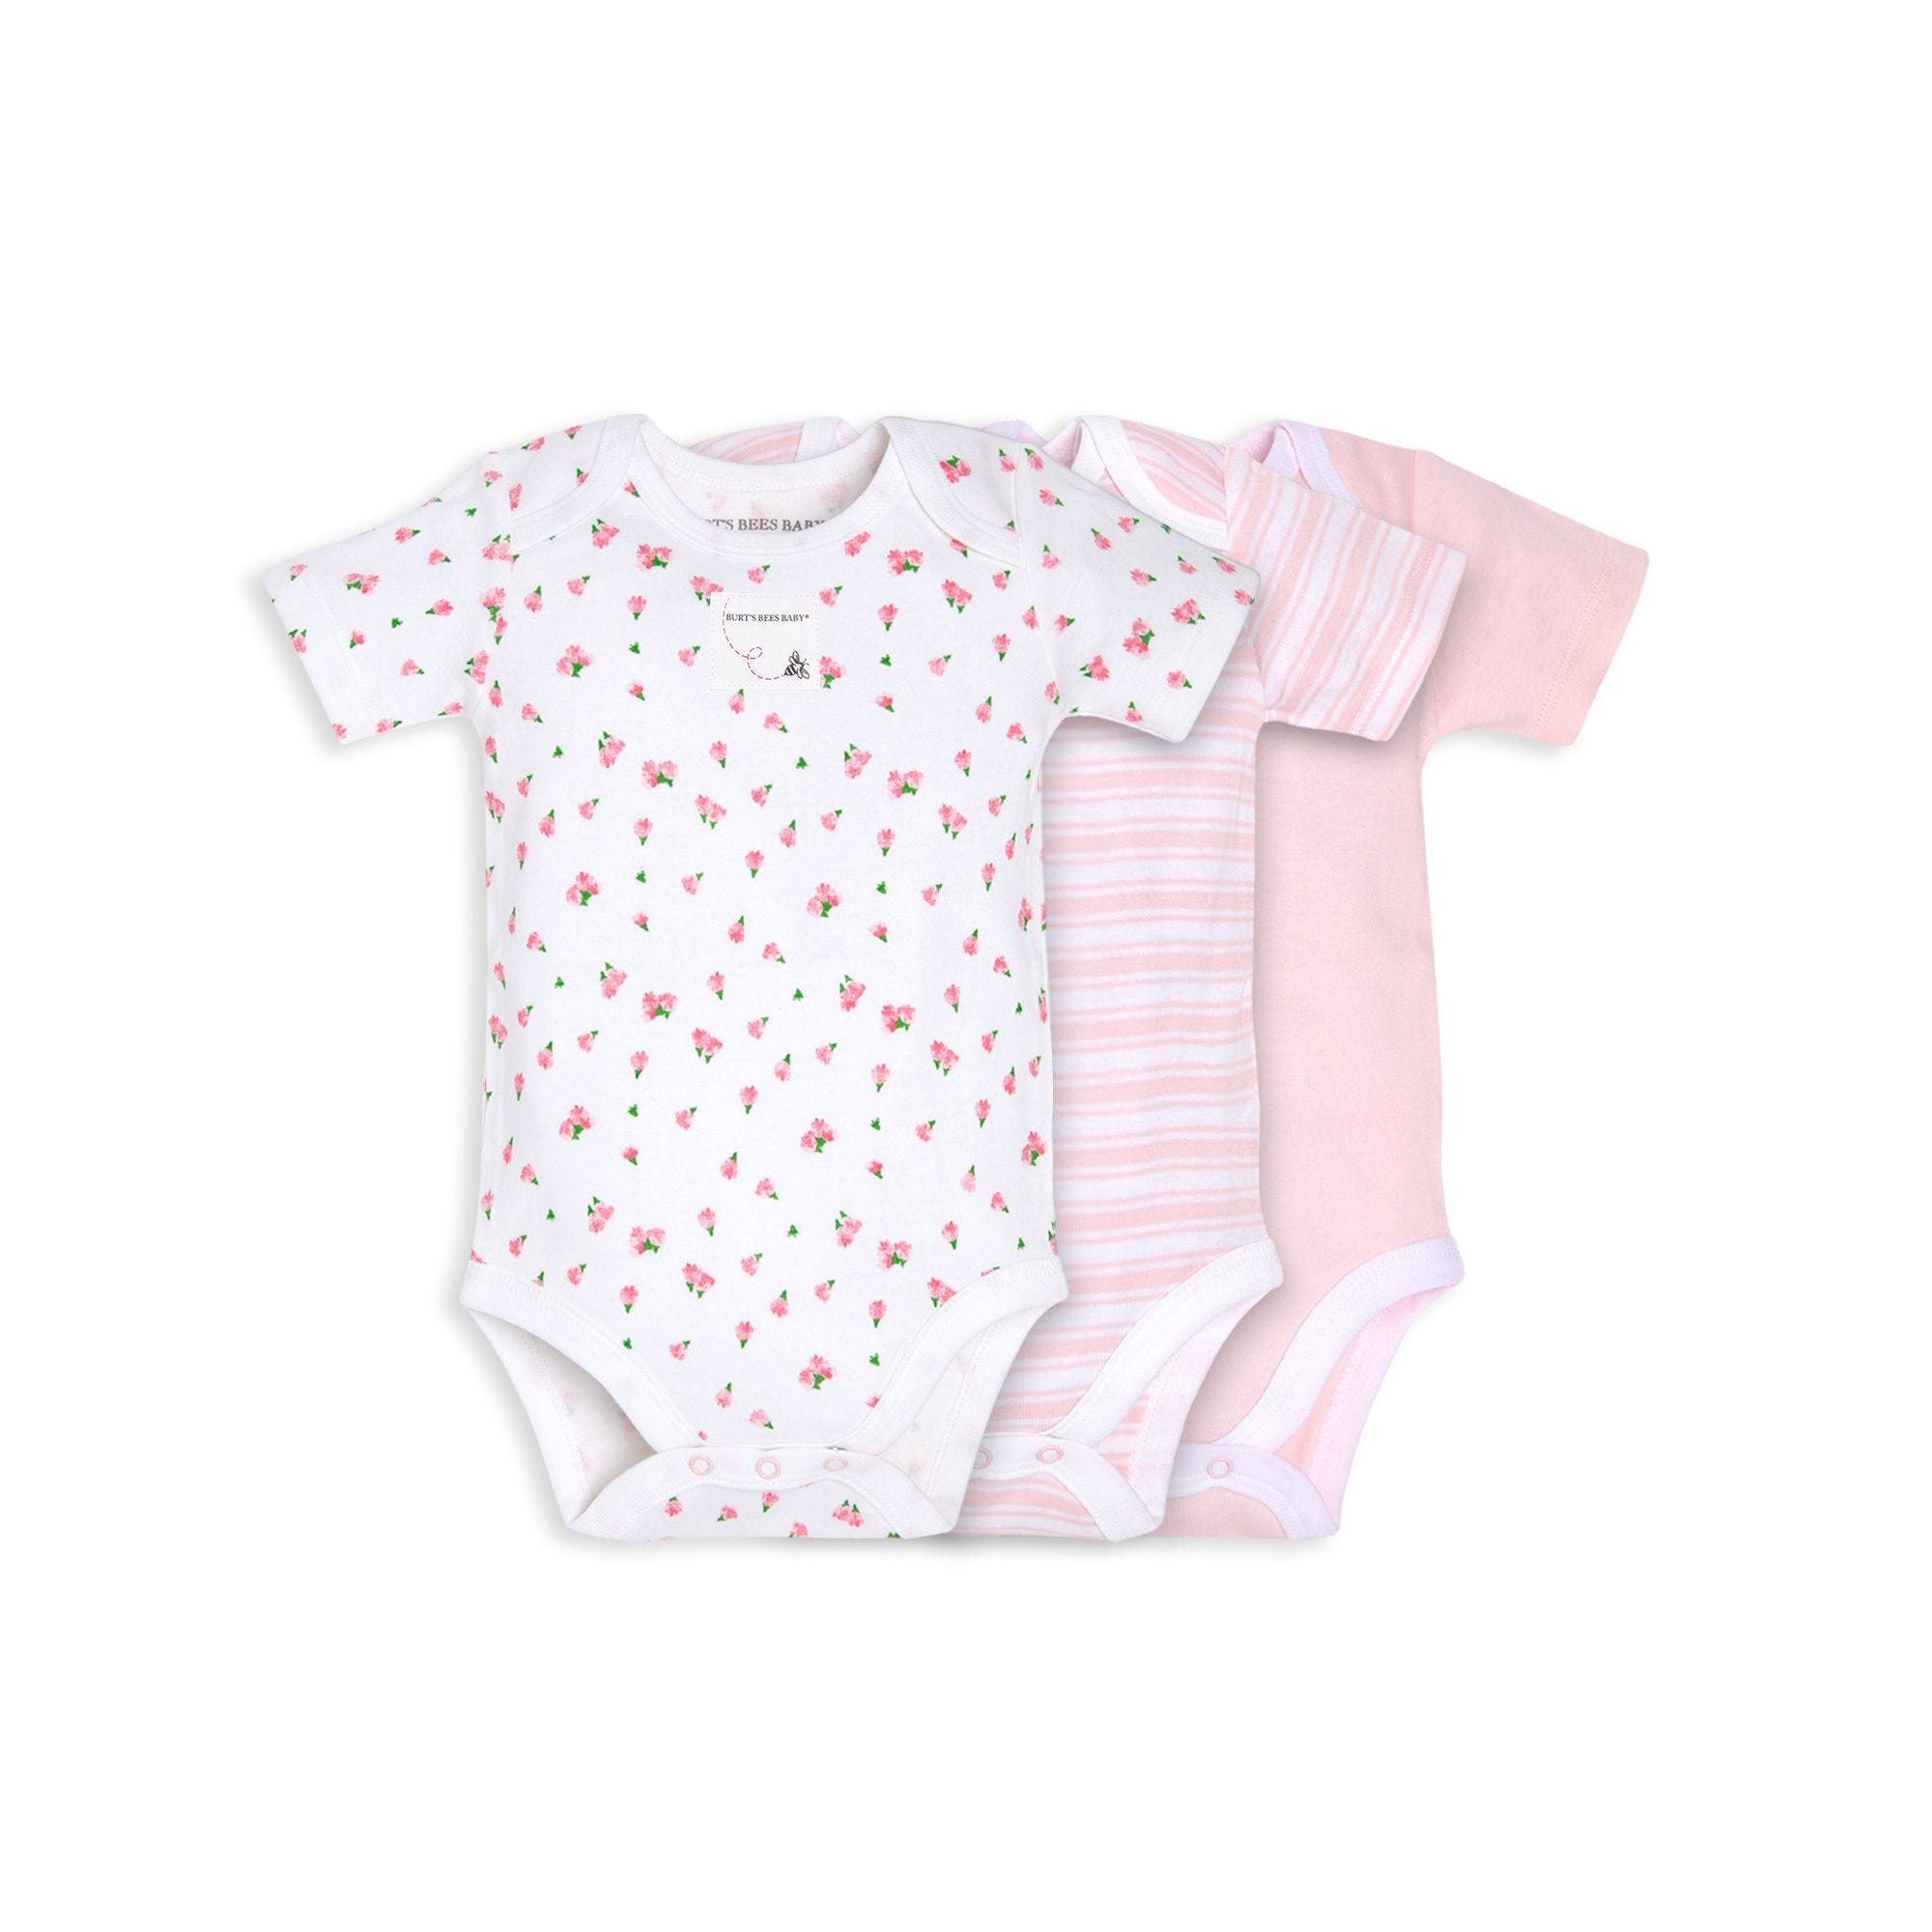 Organic Cotton 3 Pack Tossed Tulip Bodysuits